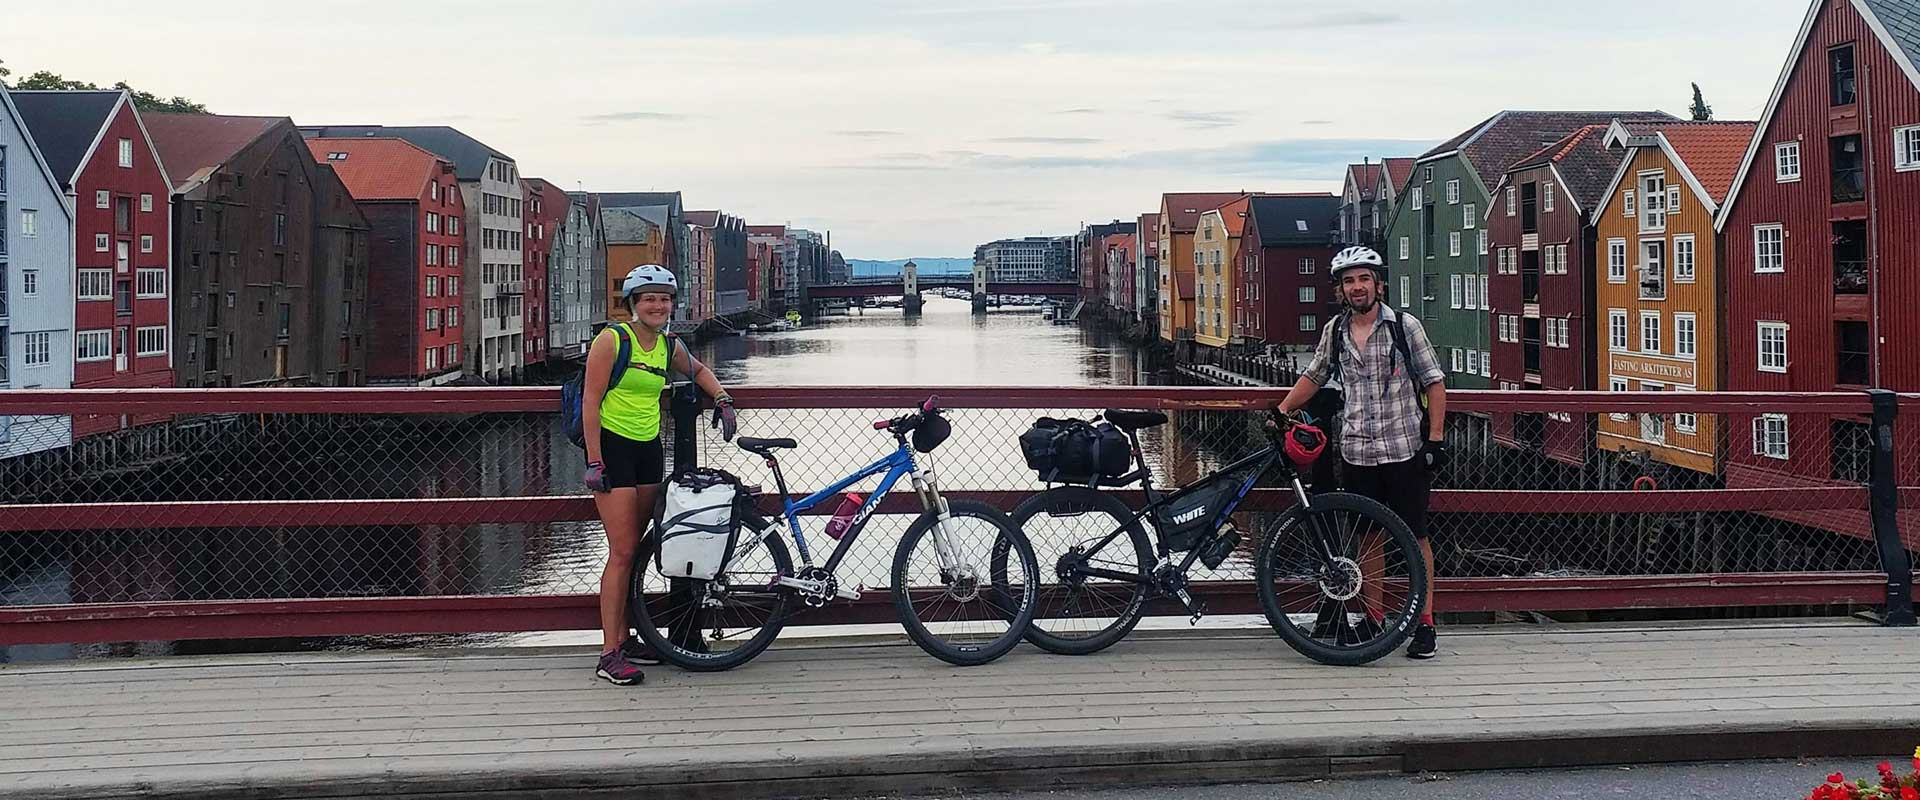 A woman and a man with bikes on a bridge in Trondheim